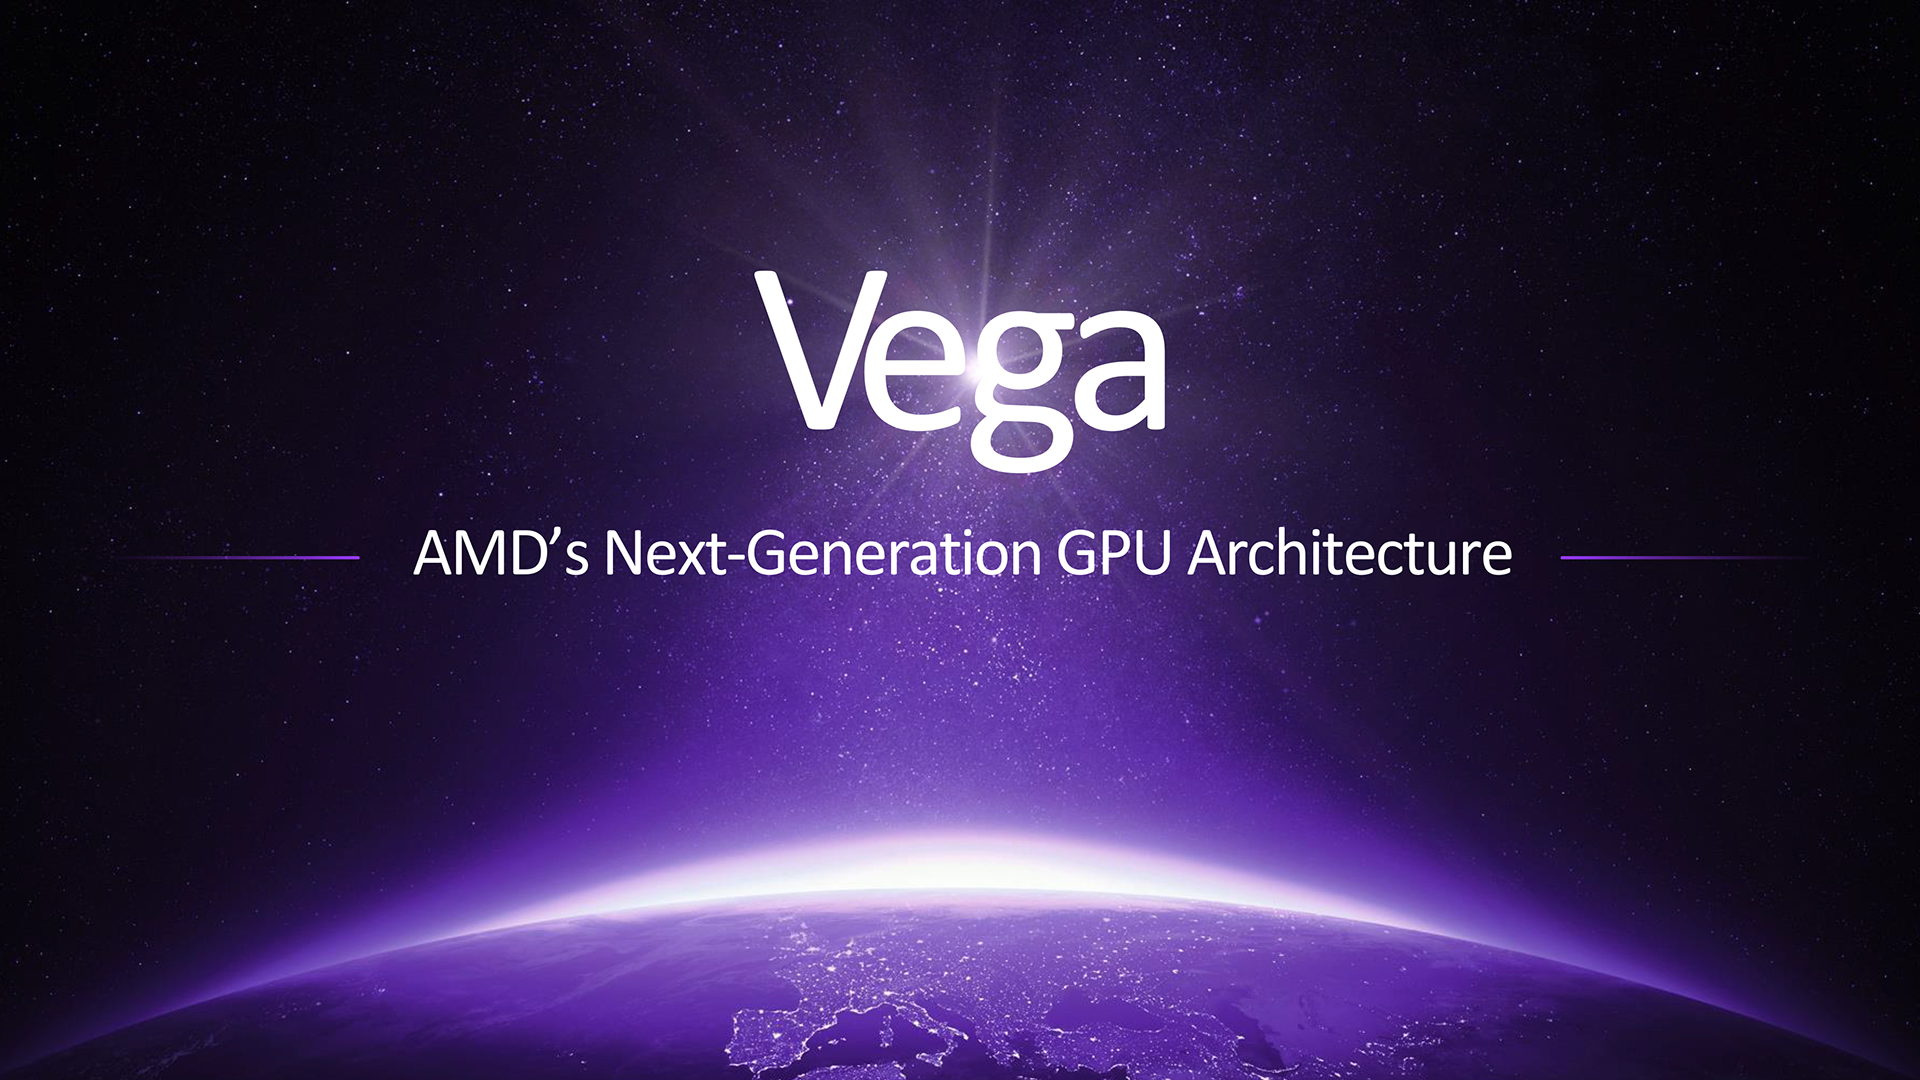 AMD Vega takes the stage, flexing serious graphics muscle